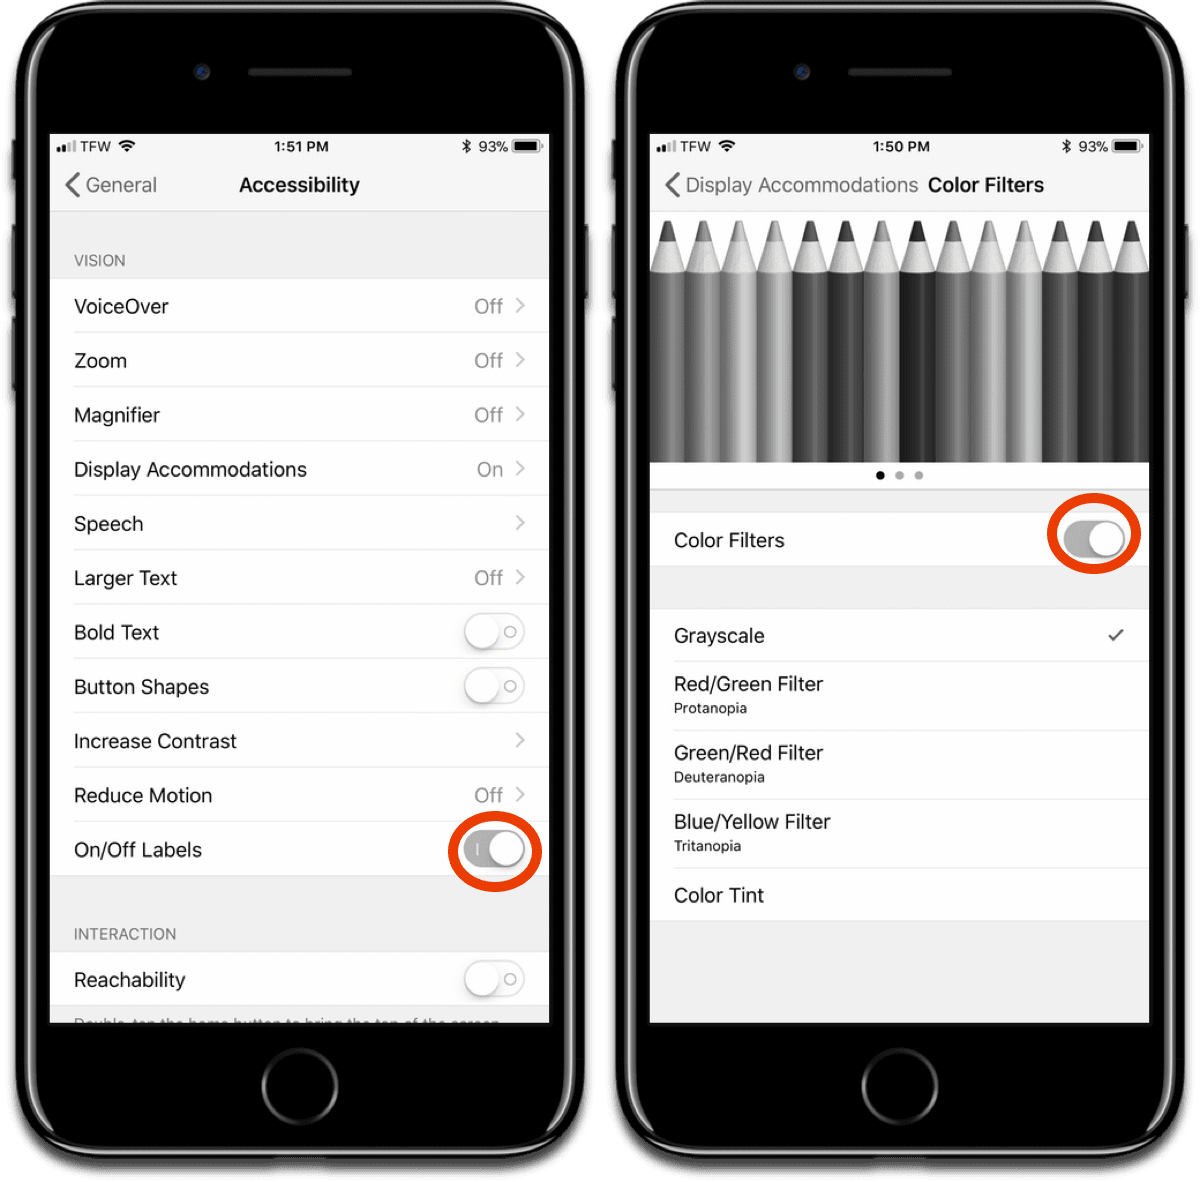 You can enable grayscale on Apple devices, like this iPhone.